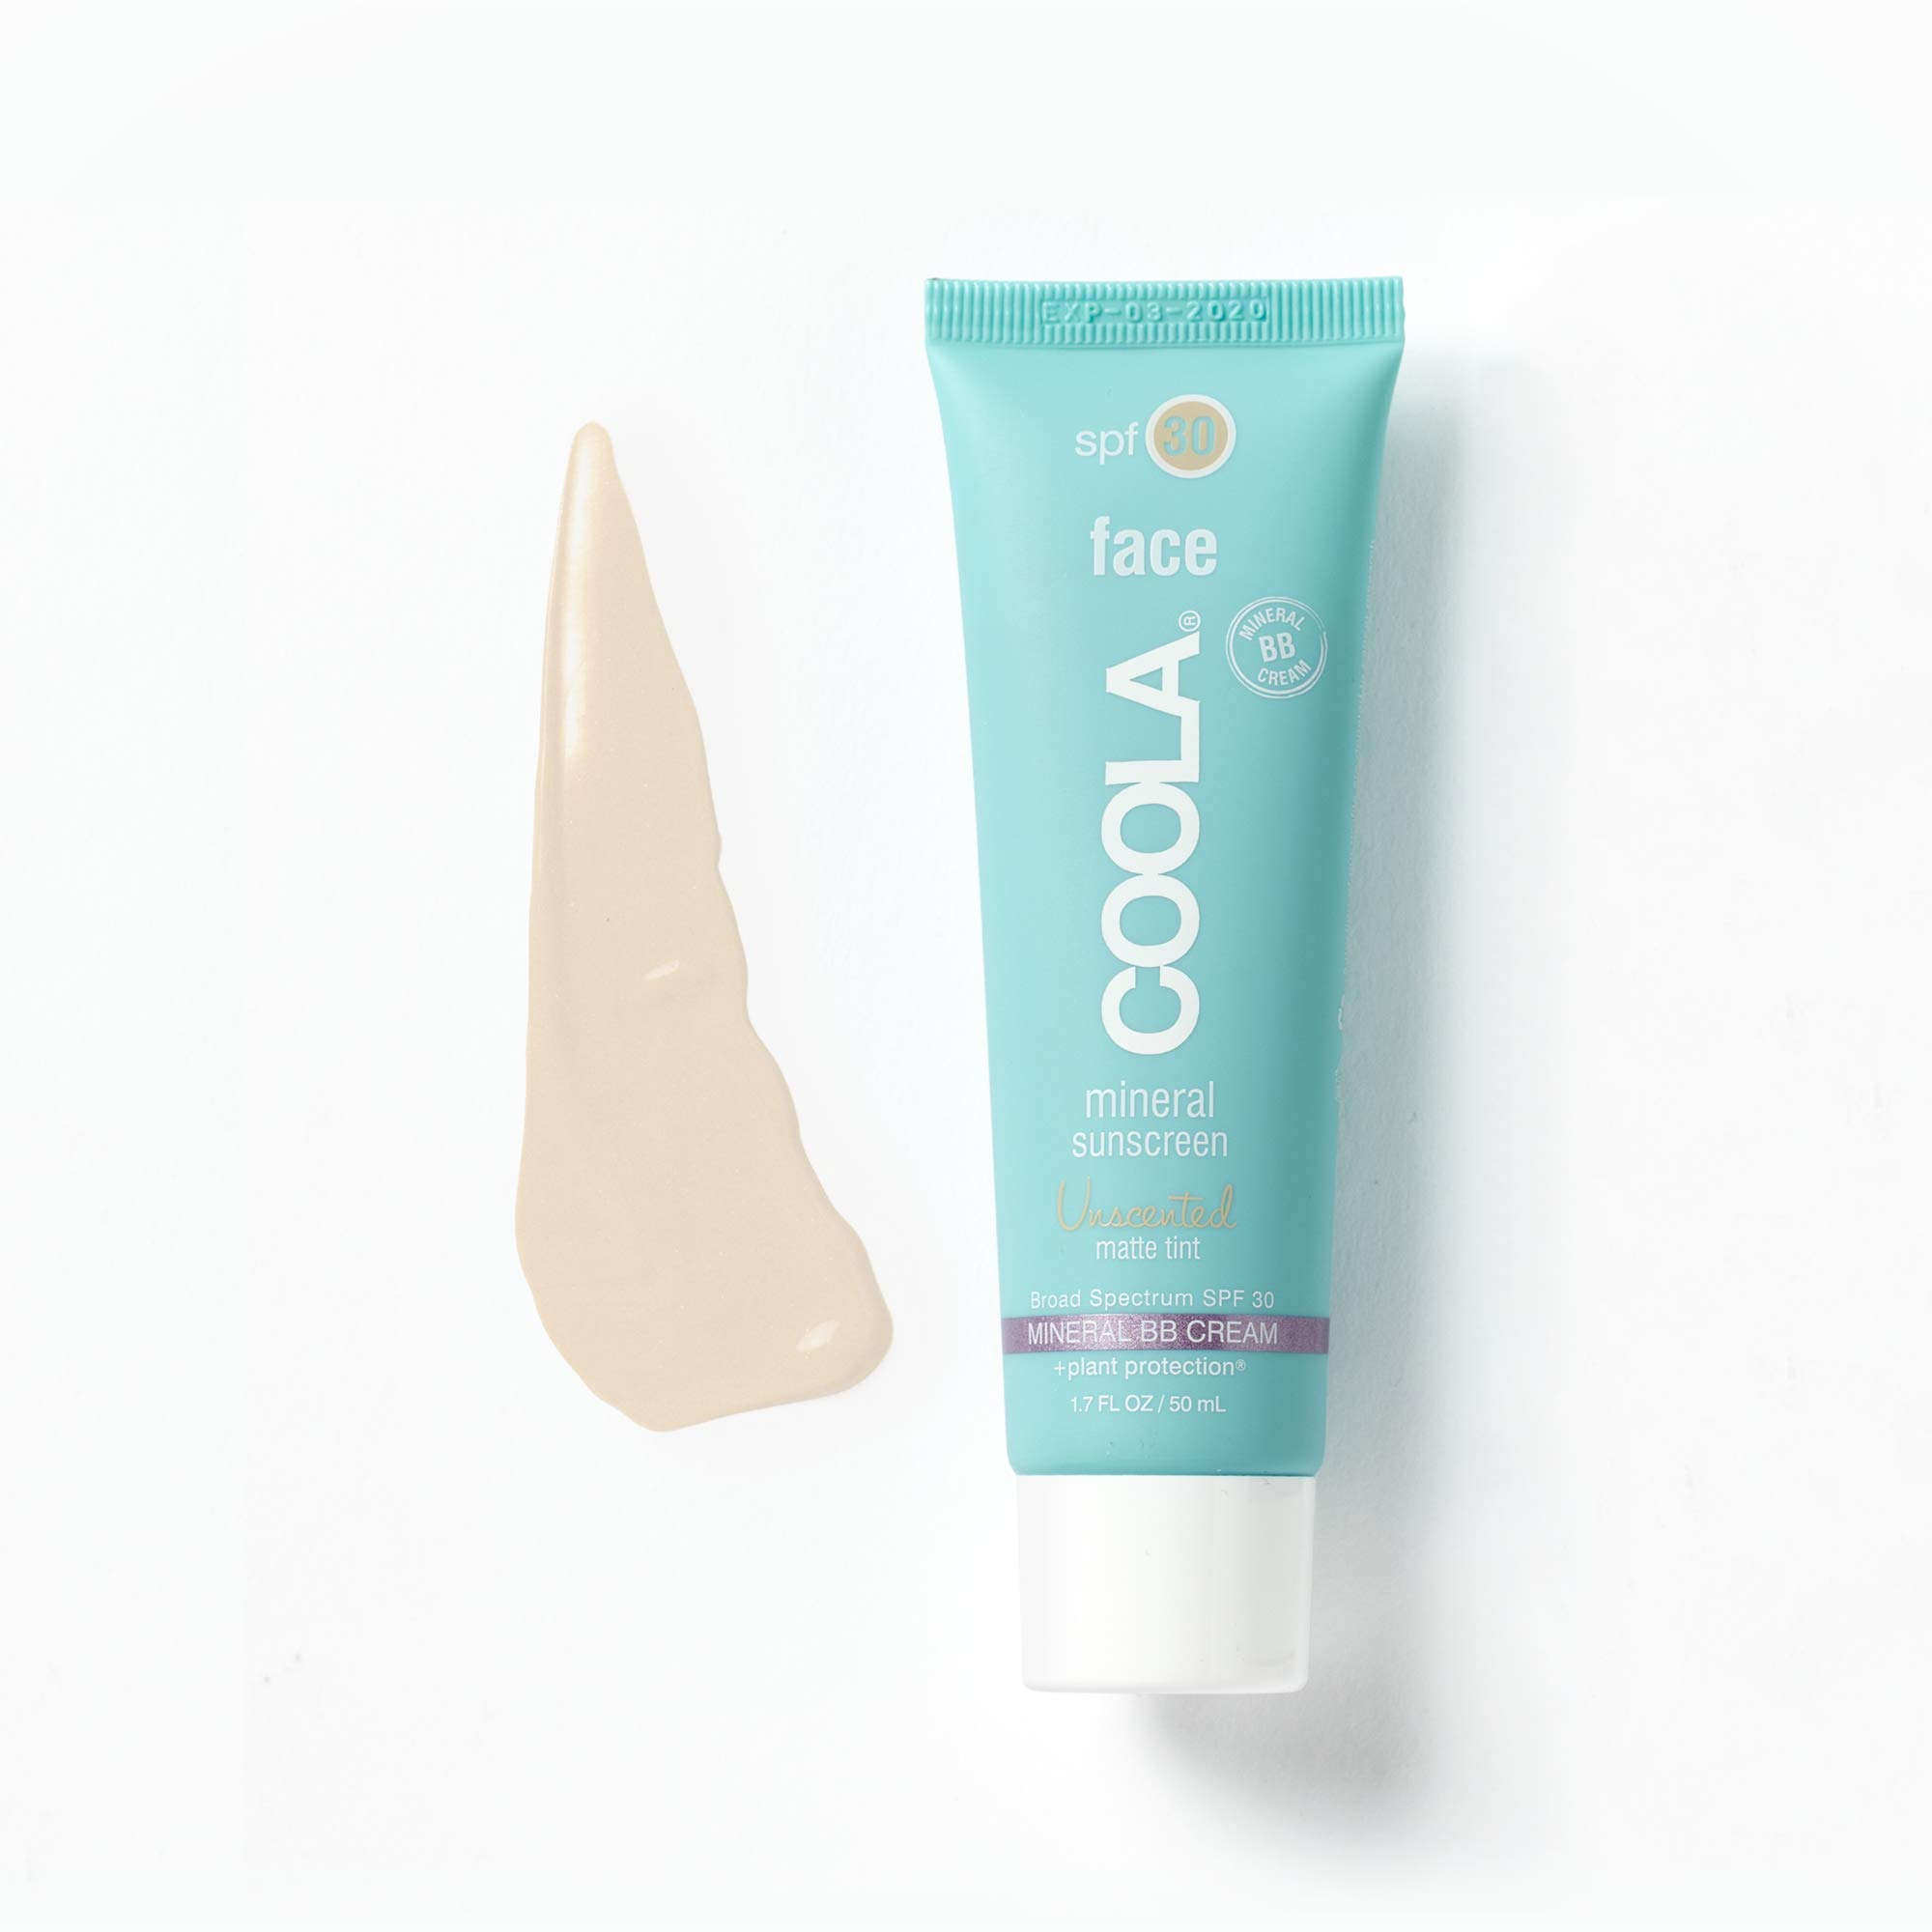 COOLA Mineral Suncare, Unscented Matte Tint Face Sunscreen, SPF 30, 1.7 fl. Ounce, Mineral BB Cream, Natural Beige Tint by Coola Suncare